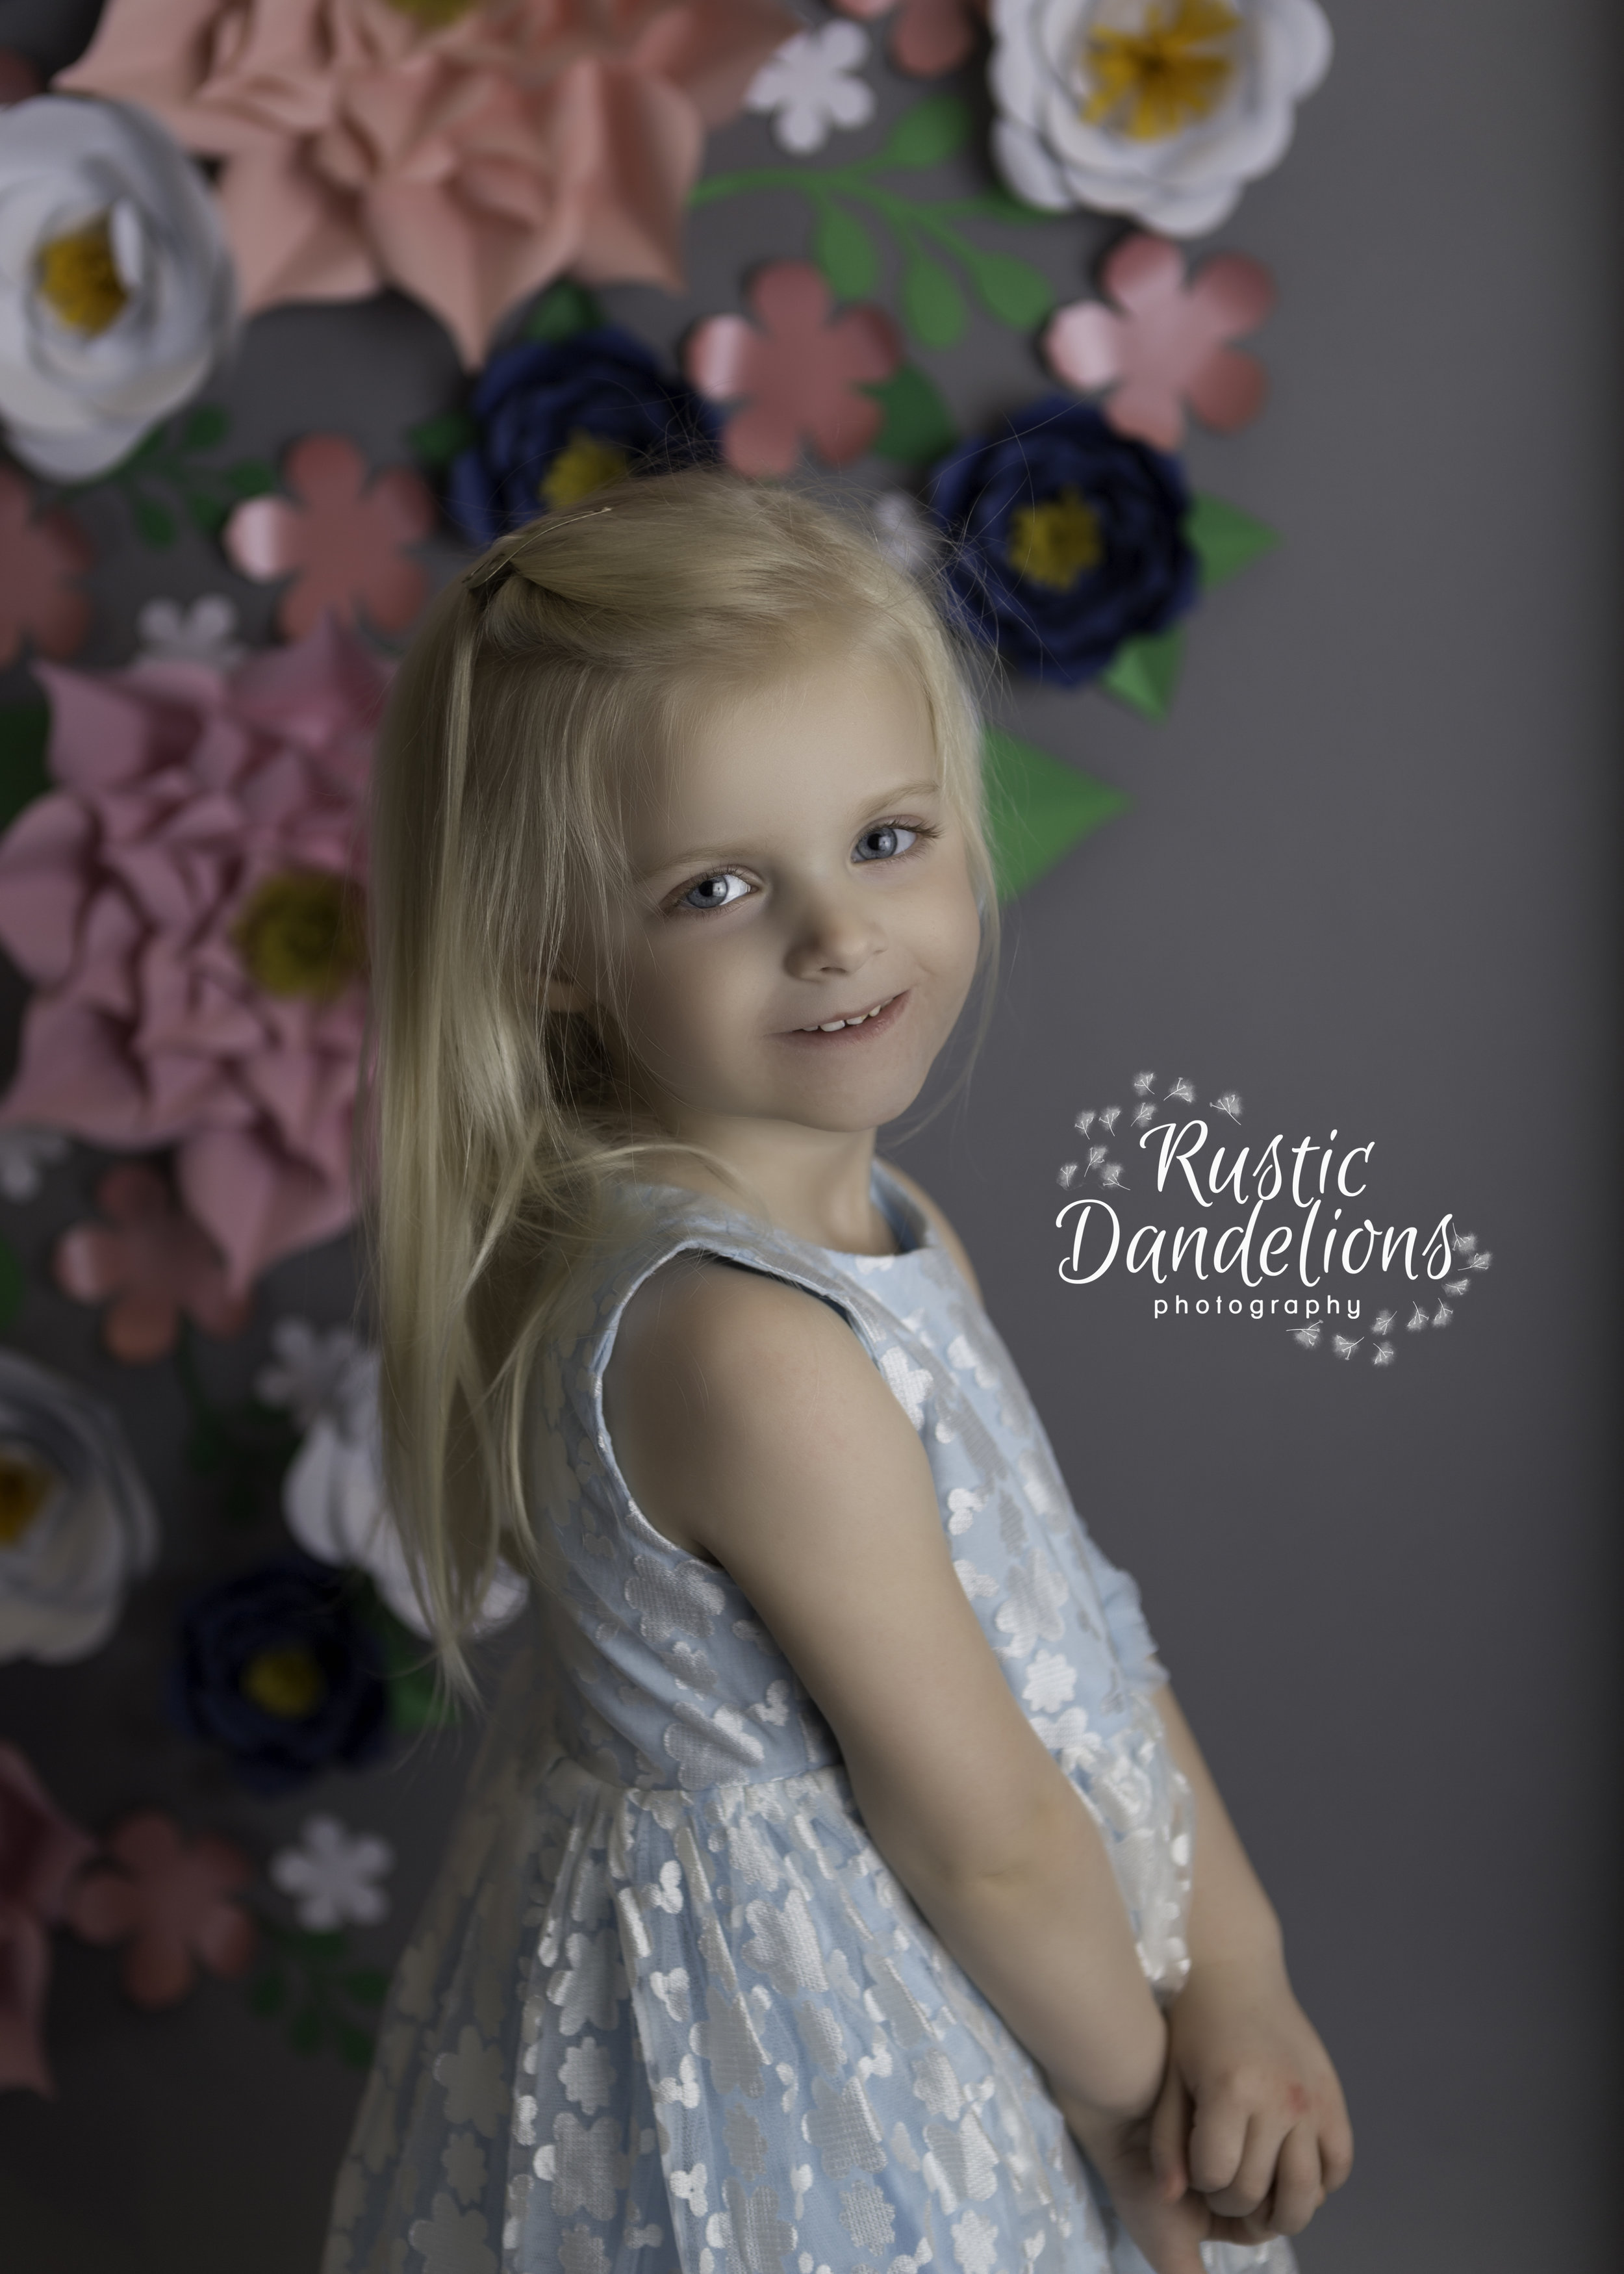 Then I had the pleasure of photographing this blonde haired beauty!